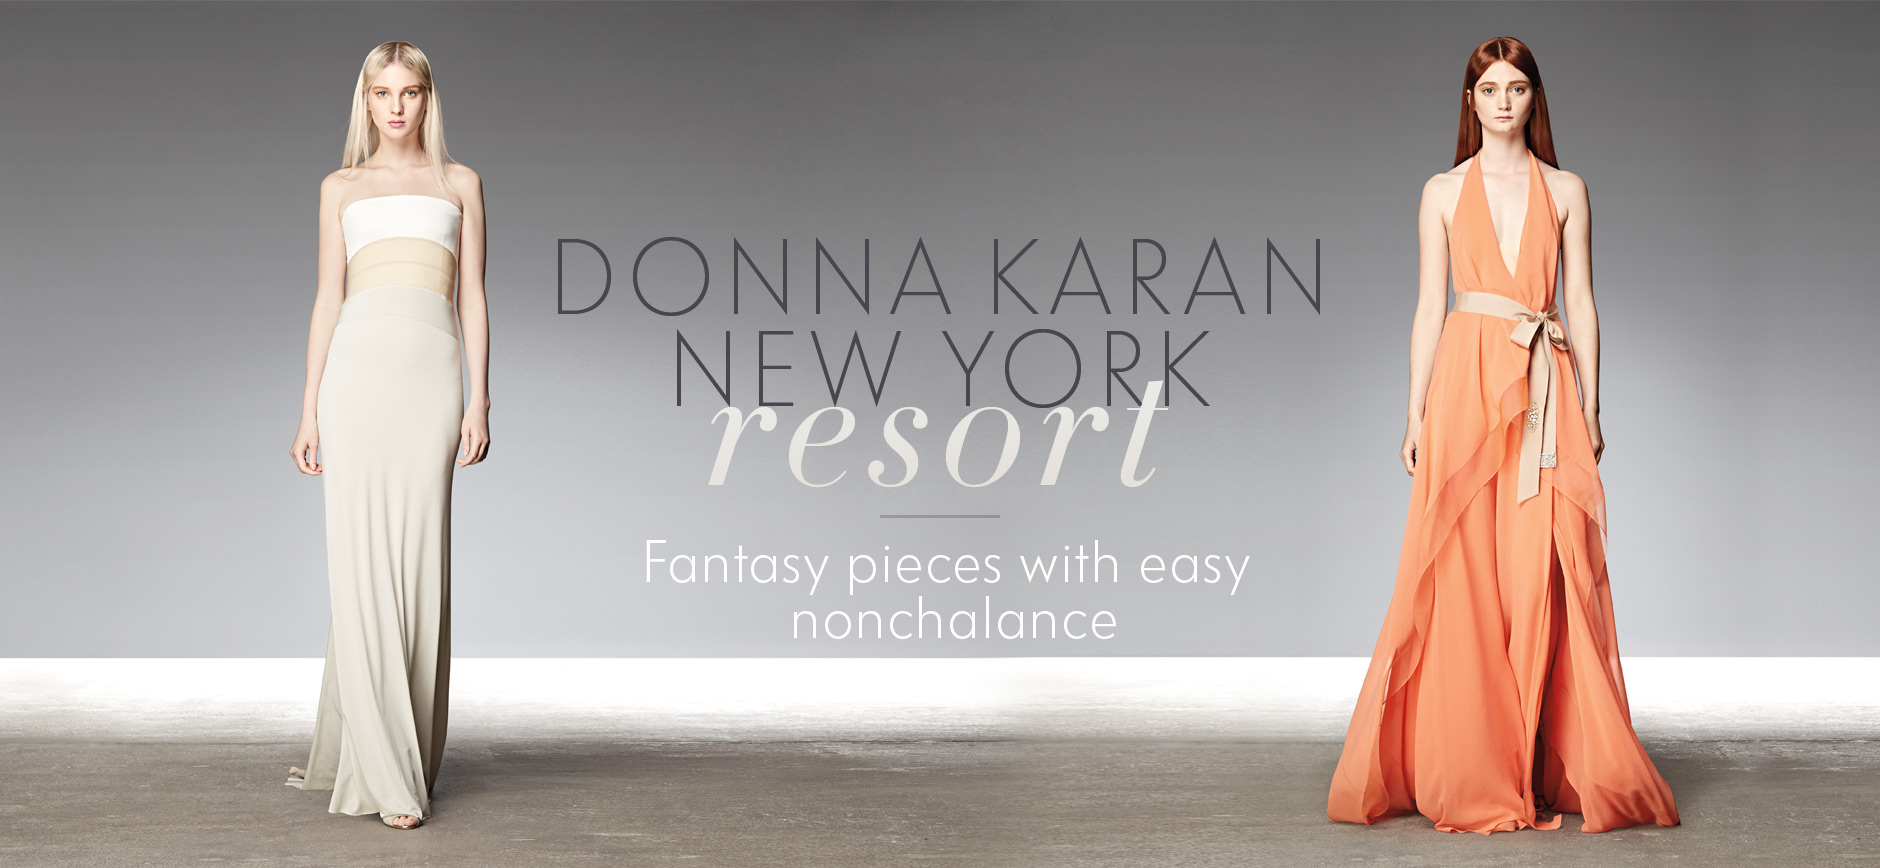 Donna Karan New York Resort